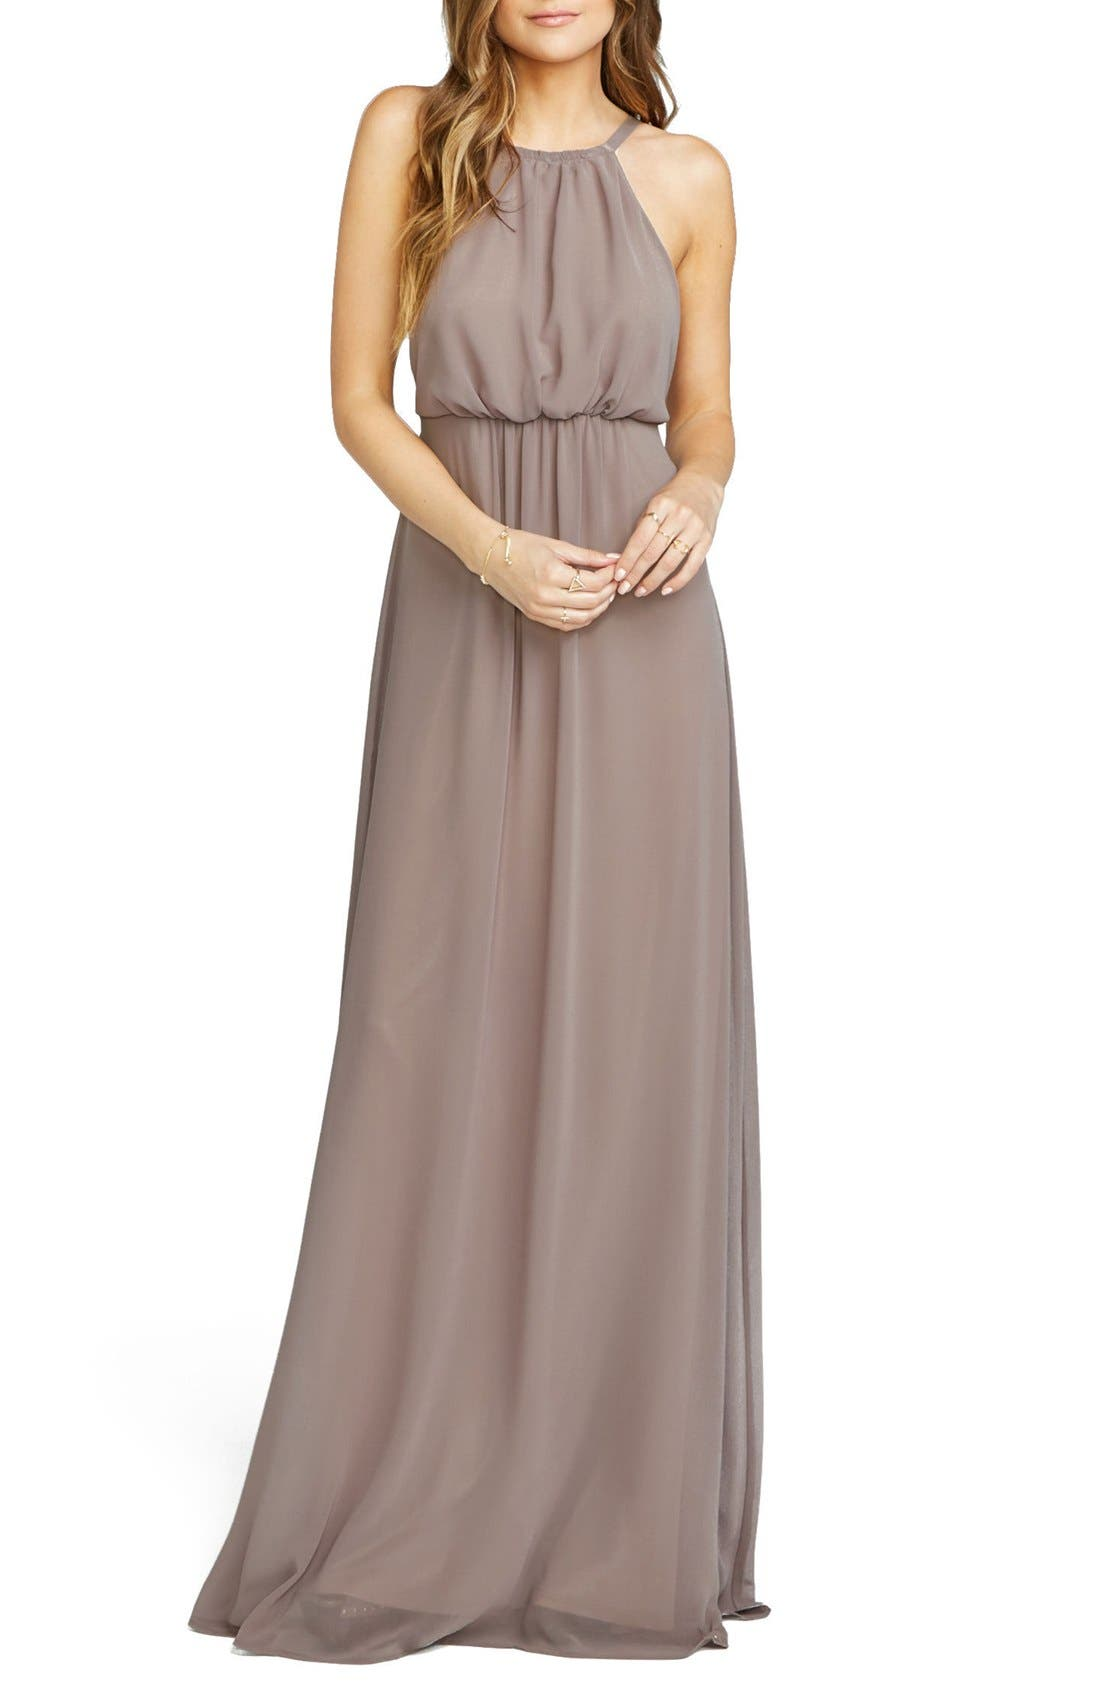 Amanda Open Back Blouson Gown,                             Main thumbnail 4, color,